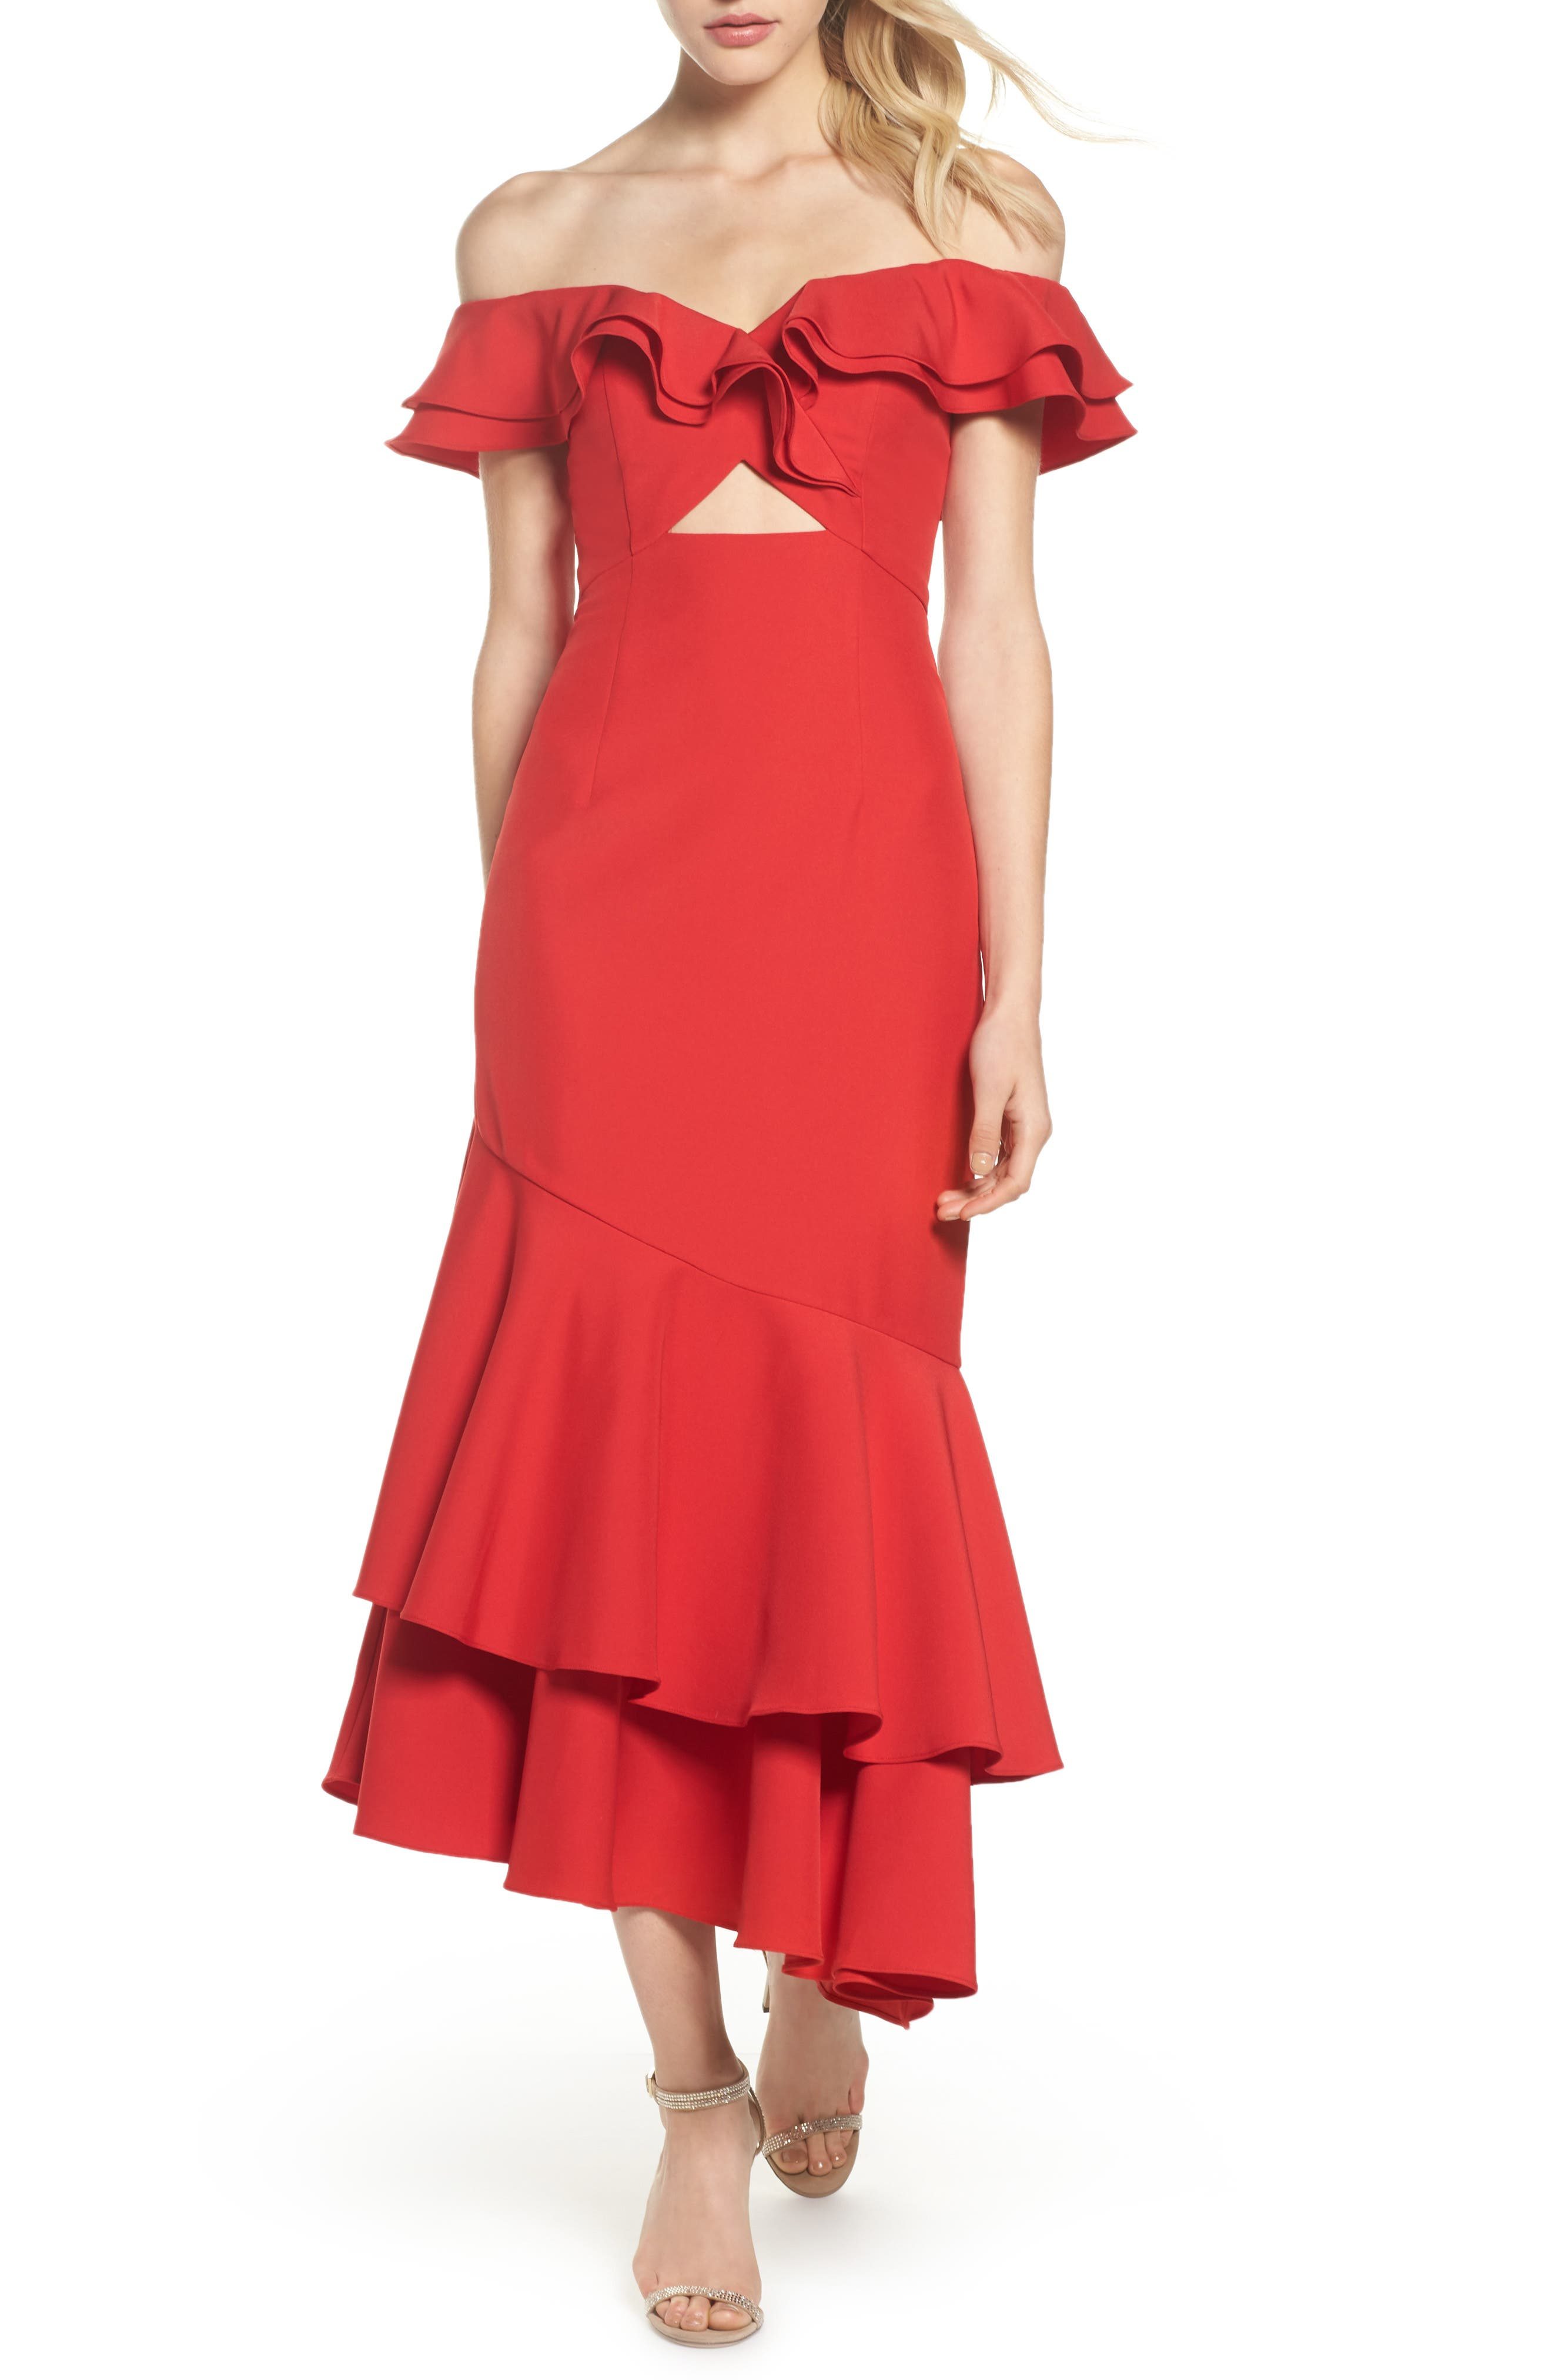 Jarlo red lace gwen dress up games